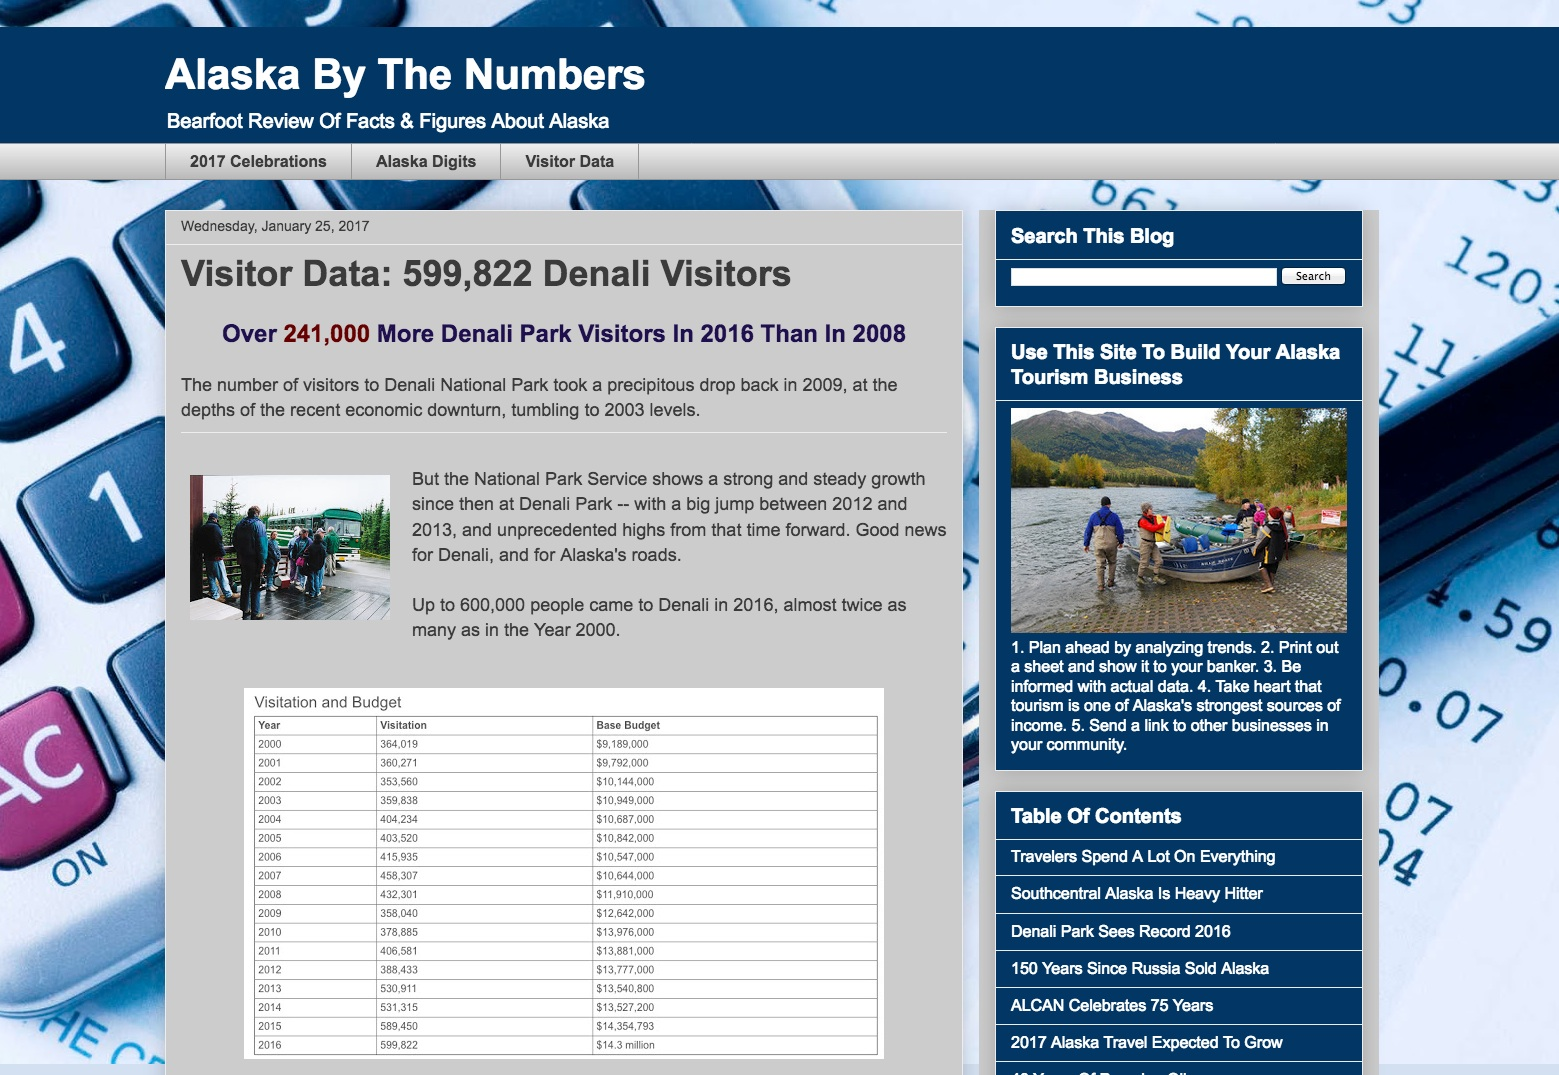 Alaska By The Numbers Website